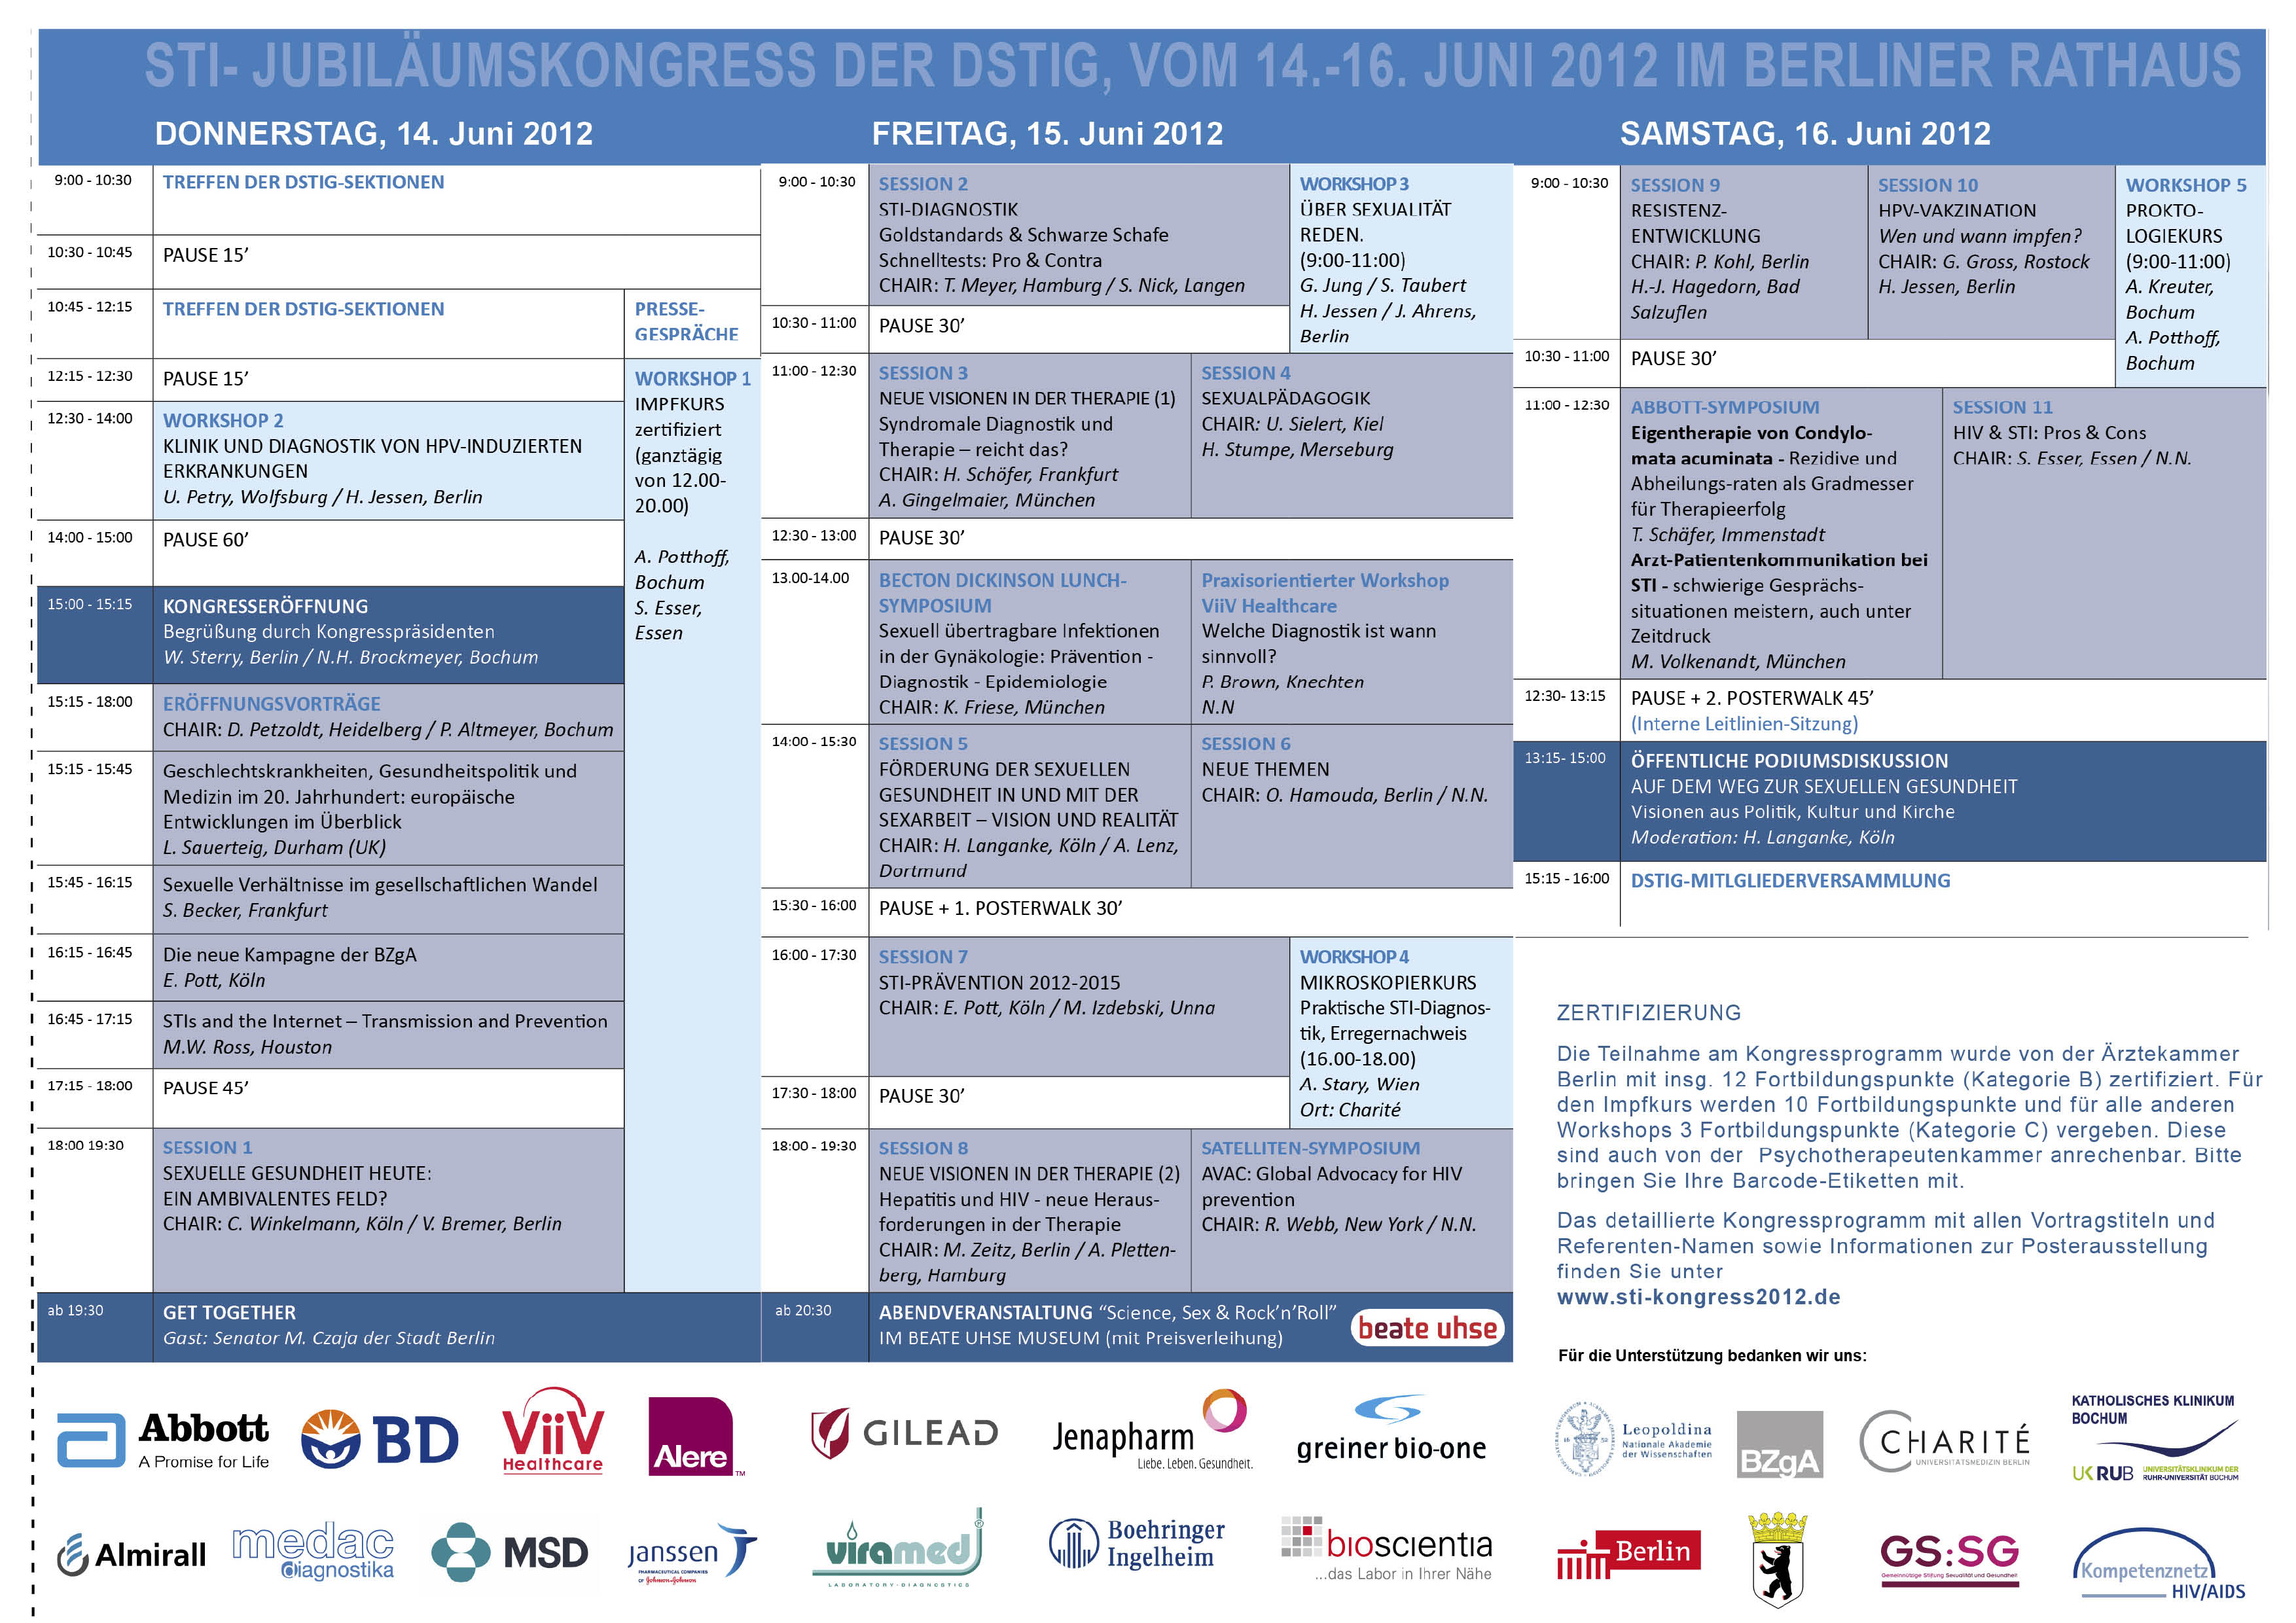 dstig-kongress 2012-program overview